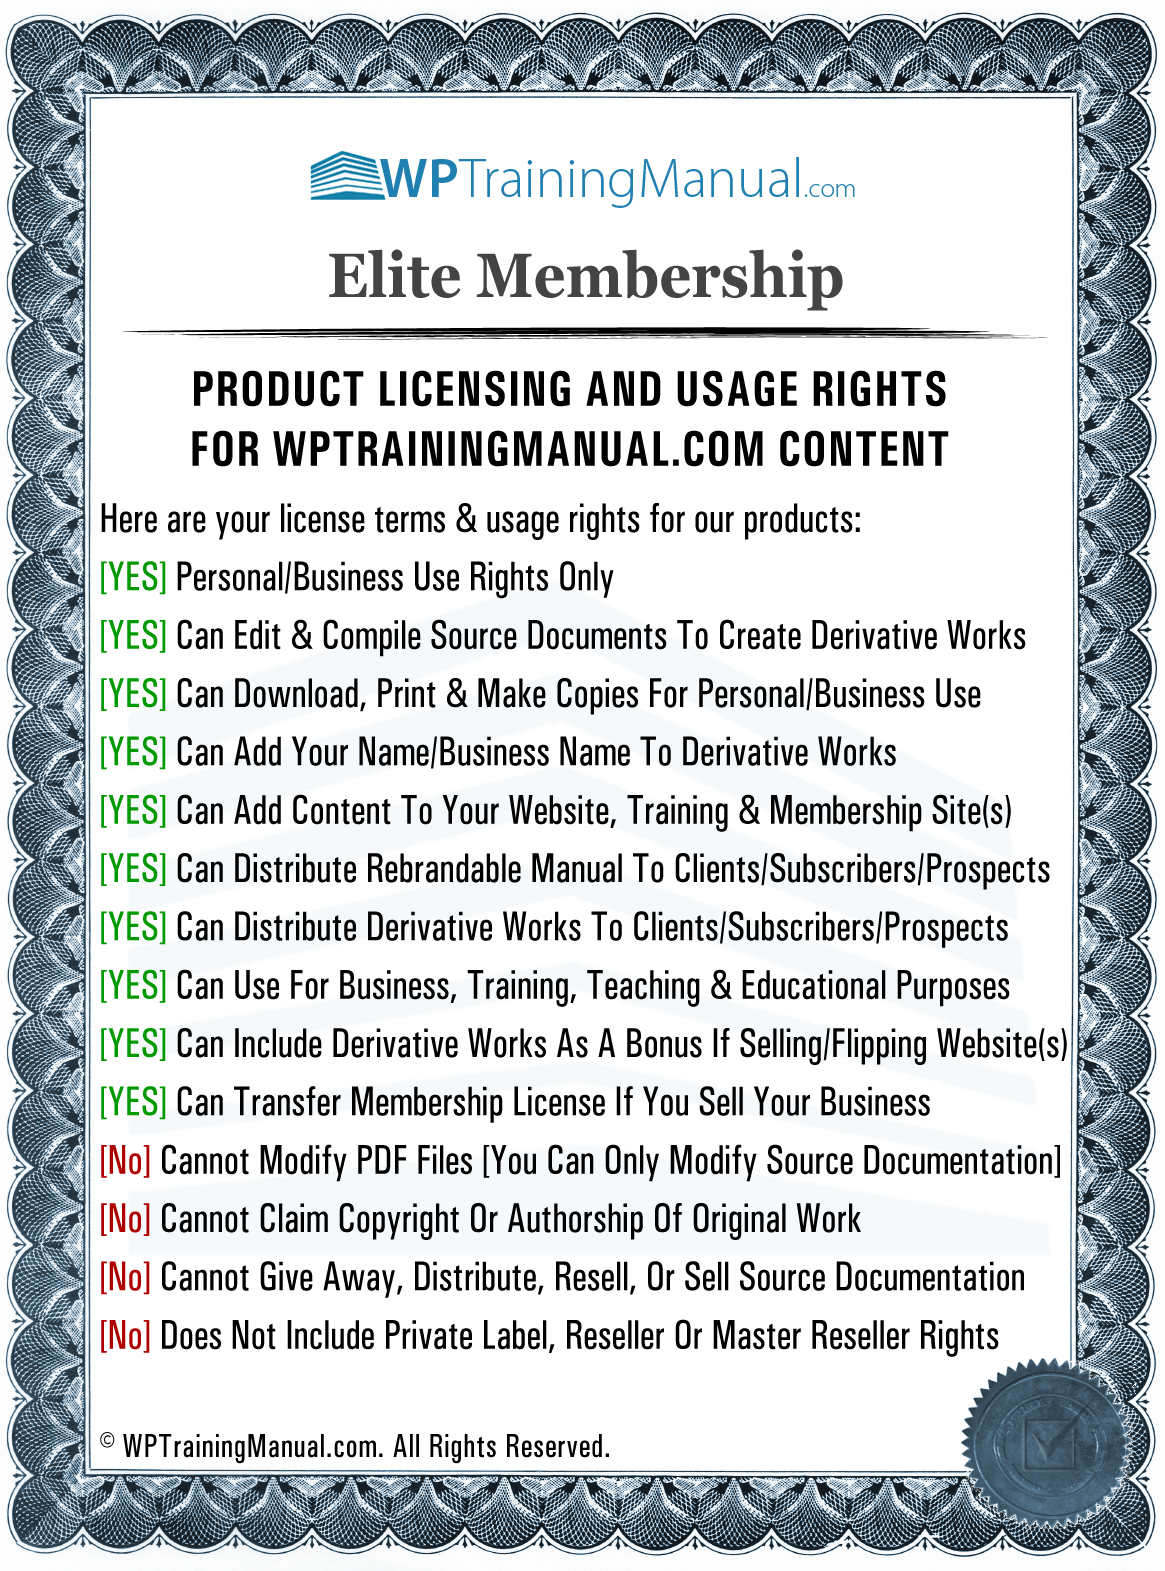 Elite Membership License